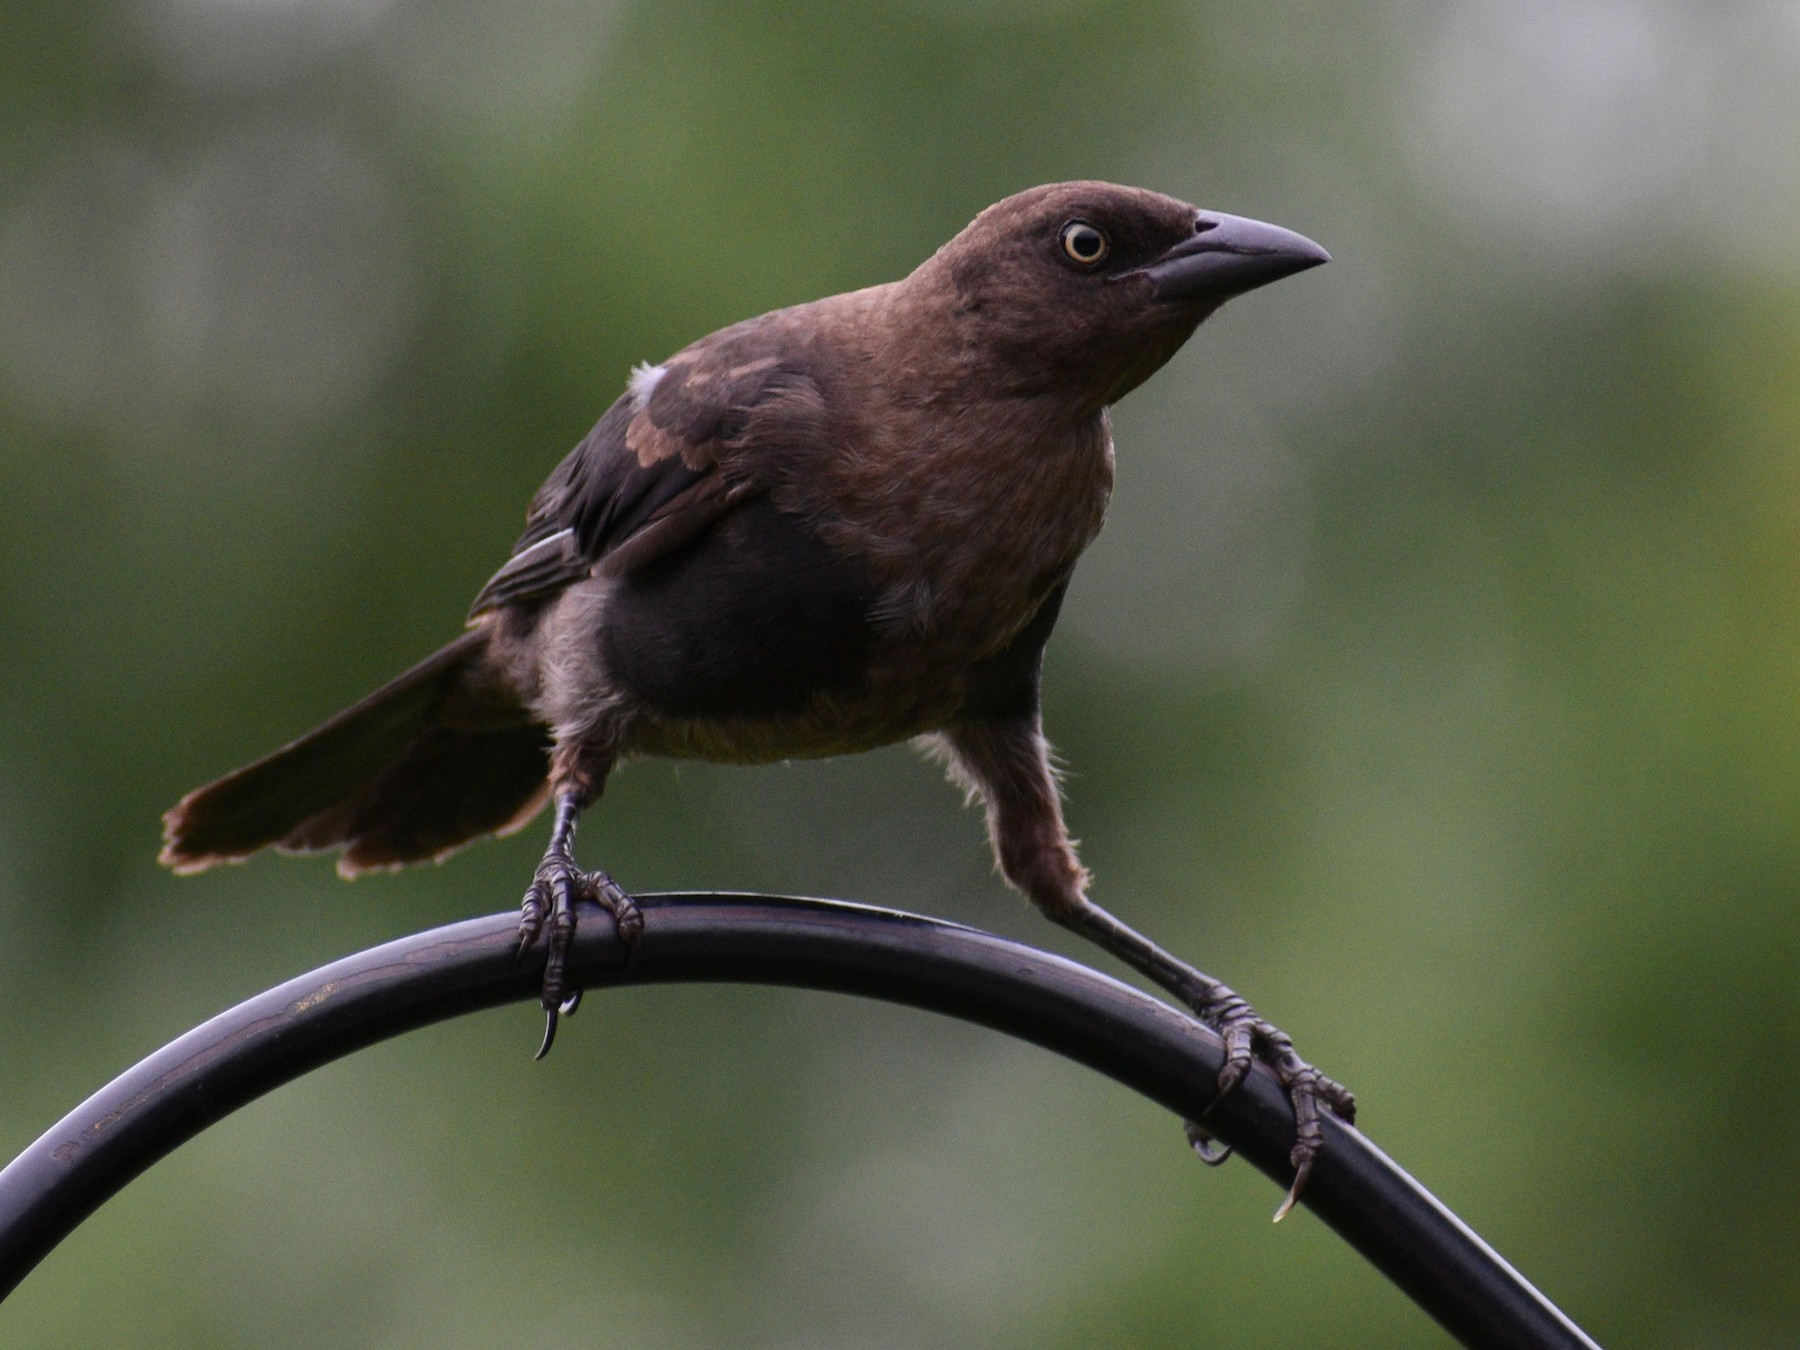 Common Grackle - Maxima Gomez-Palmer